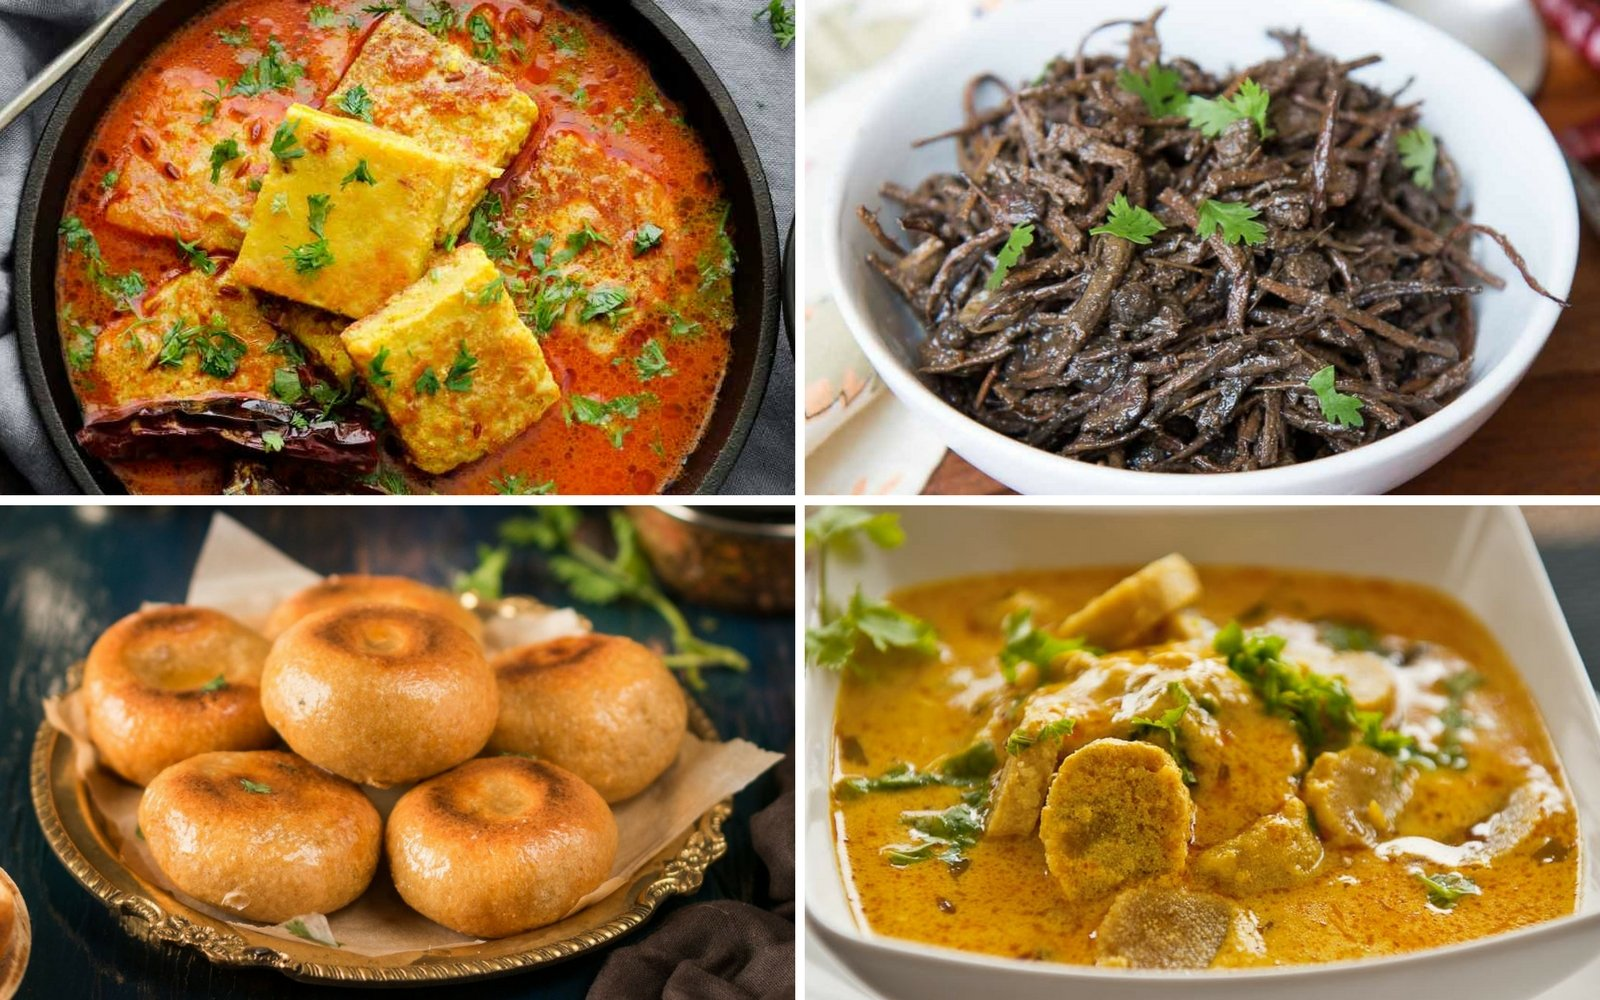 12 delicious rajasthani recipes that you can cook in your kitchen by 12 delicious rajasthani recipes that you can cook in your kitchen forumfinder Choice Image